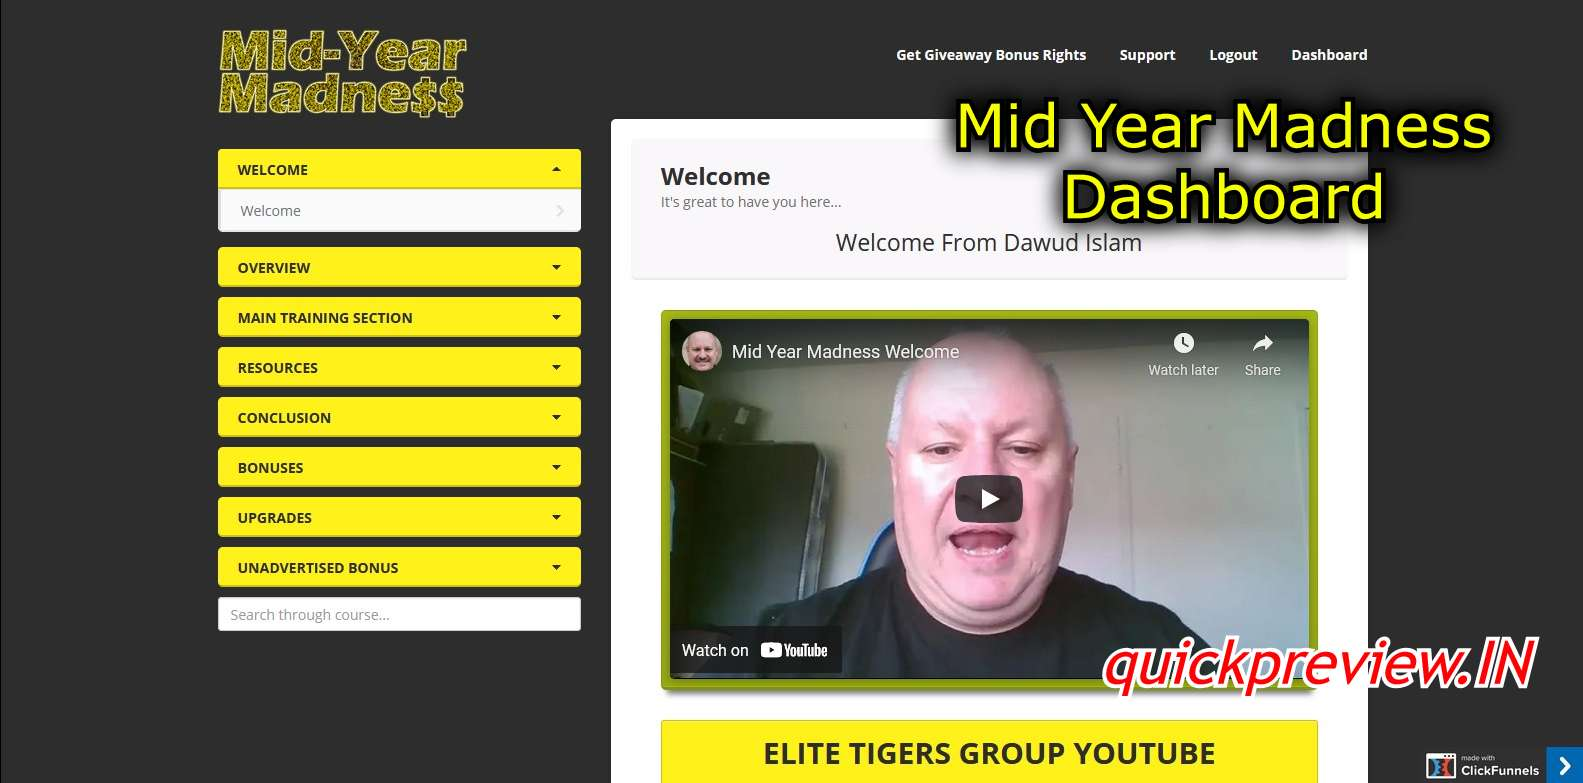 mid year madness dashboard